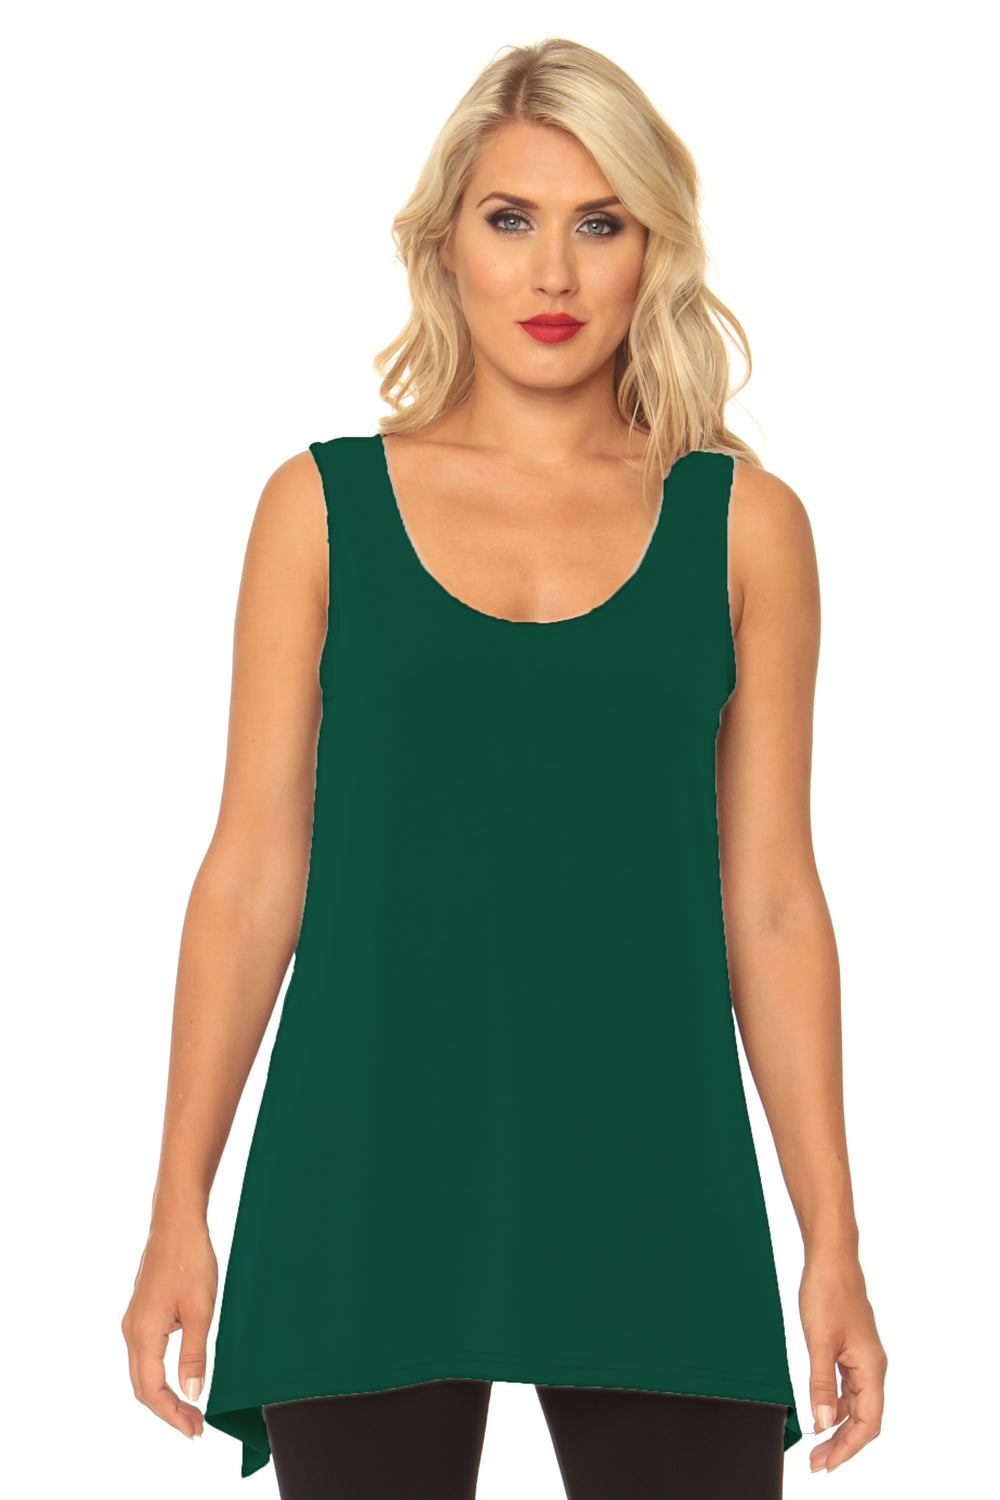 Willow Reversible Tank - Wear Me Forever Fashion Colors